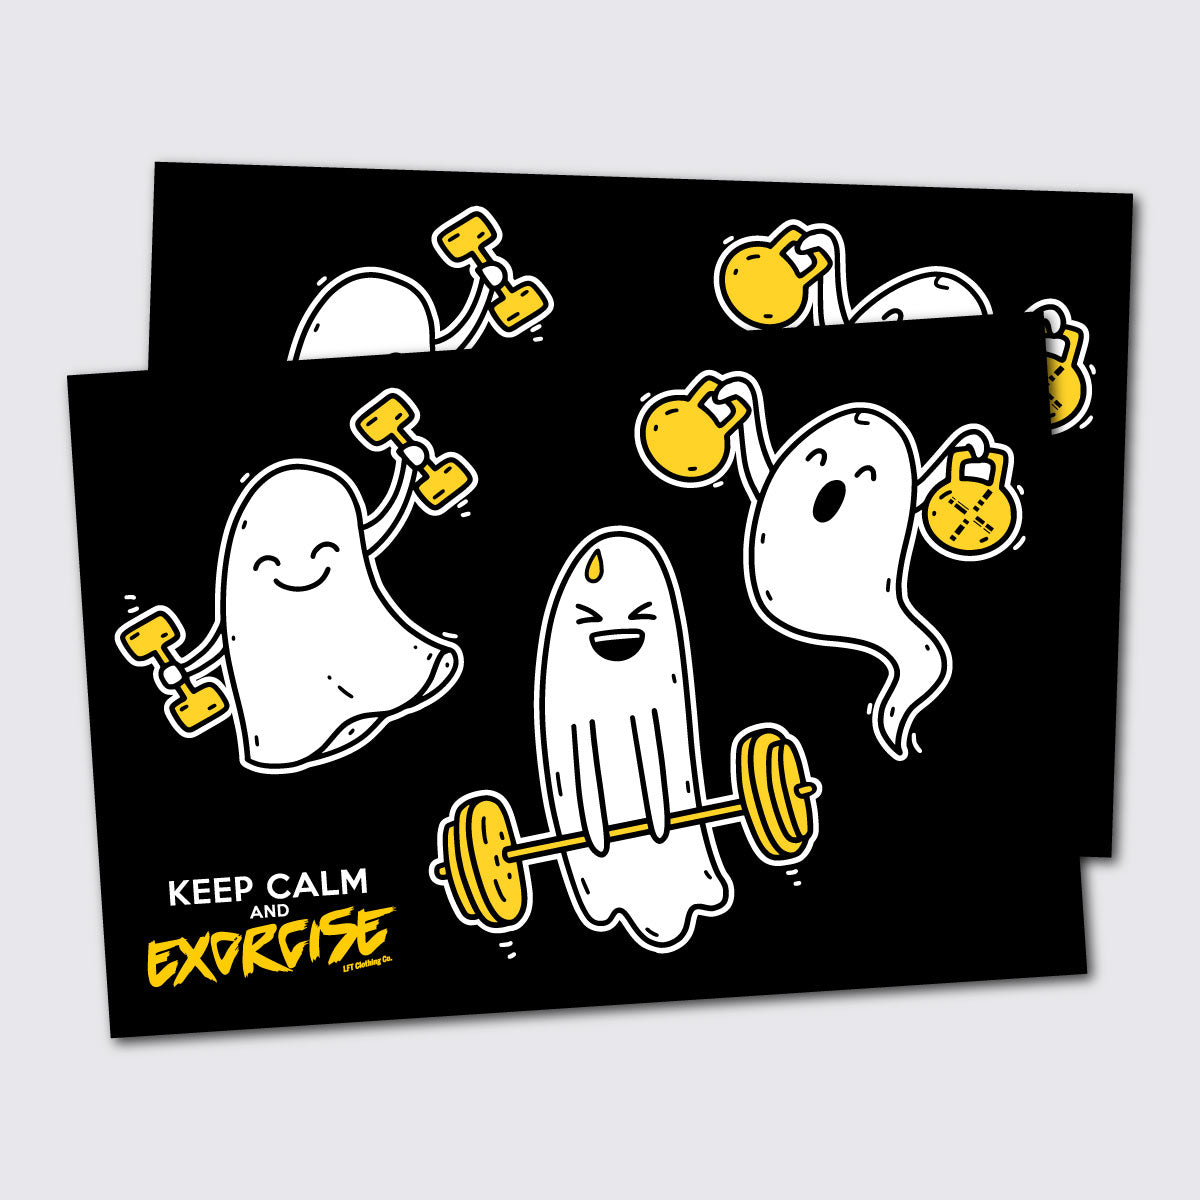 Sticker Sheet, Exorcise